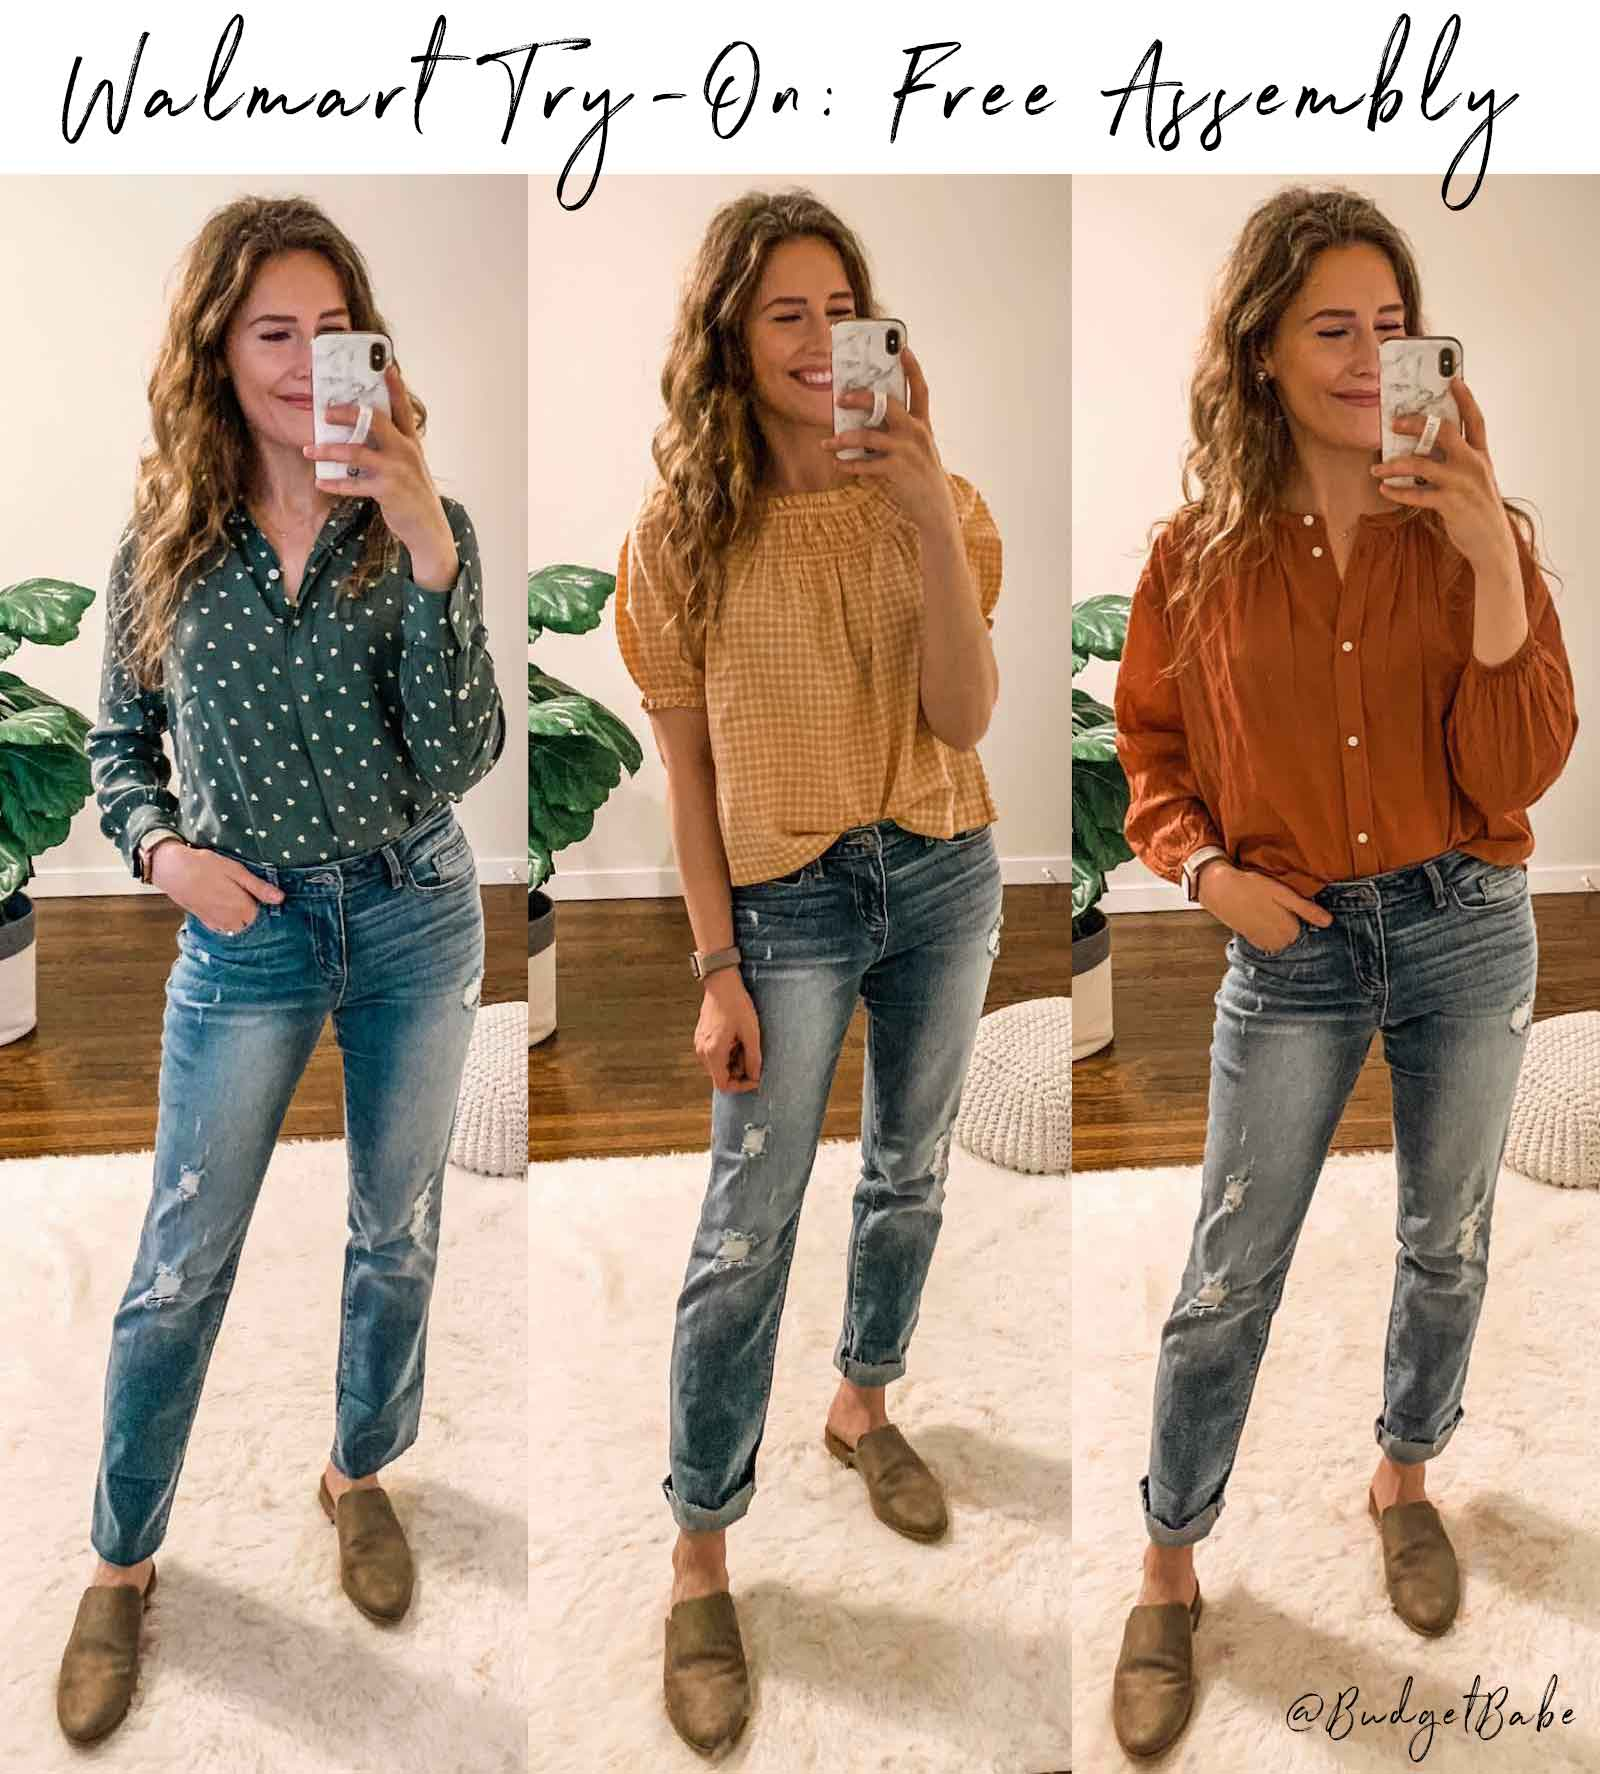 Walmart Try On-Free Assembly - Madewell vibes for less!